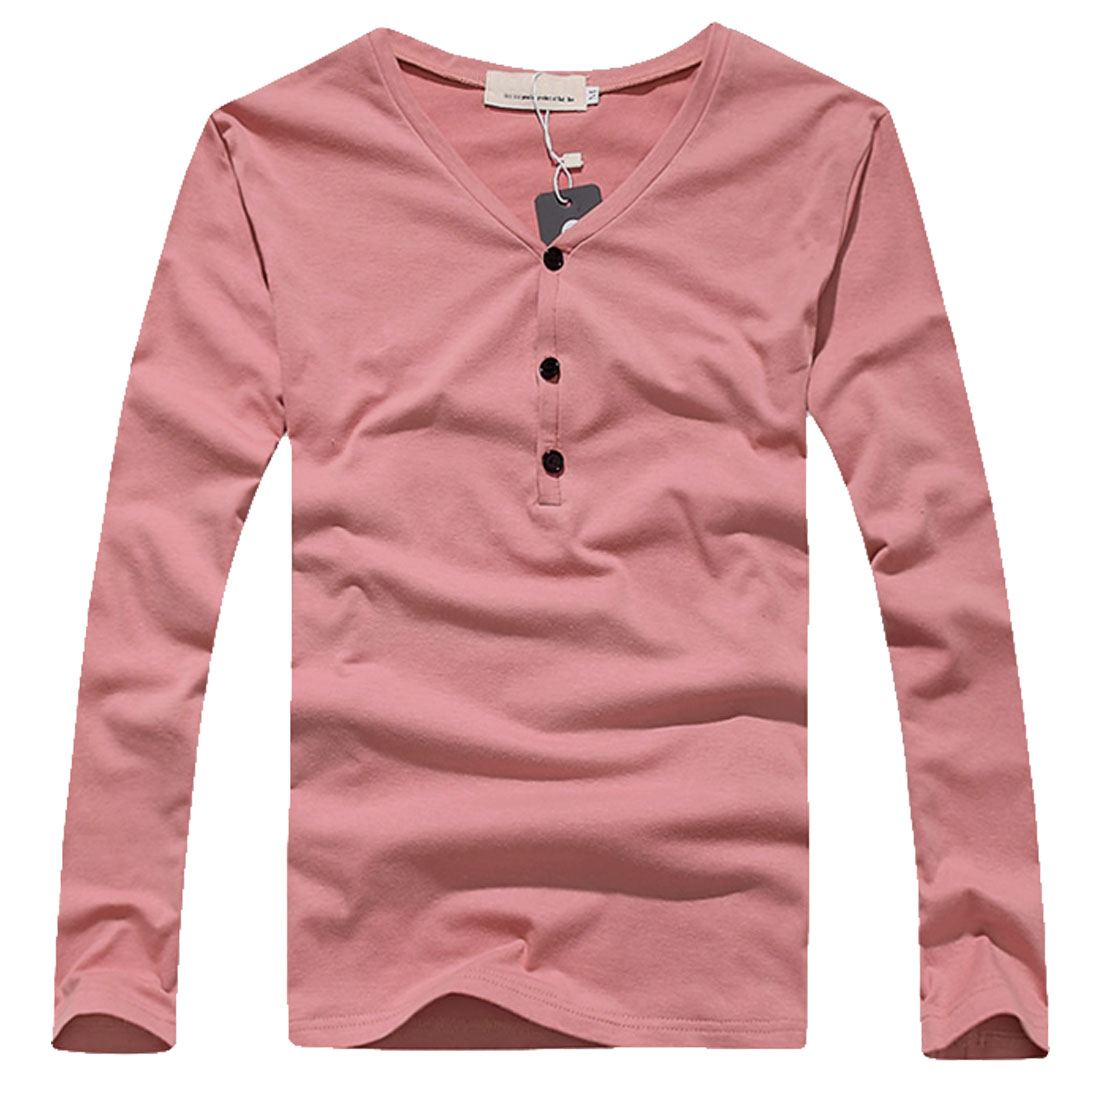 Men Pink Stylish Long Sleeve Three Buttons Stretchy Pure Color Tee Shirt XS